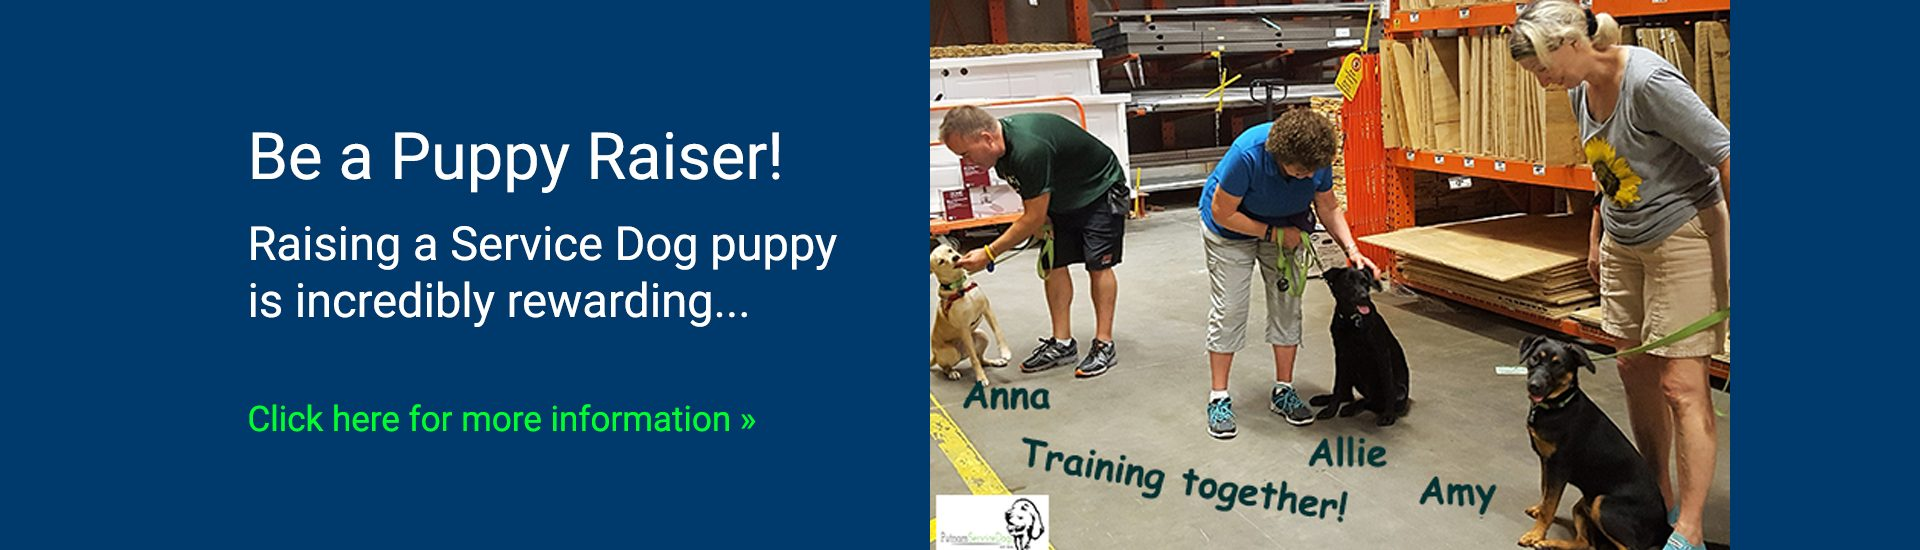 Become a Puppy Raiser